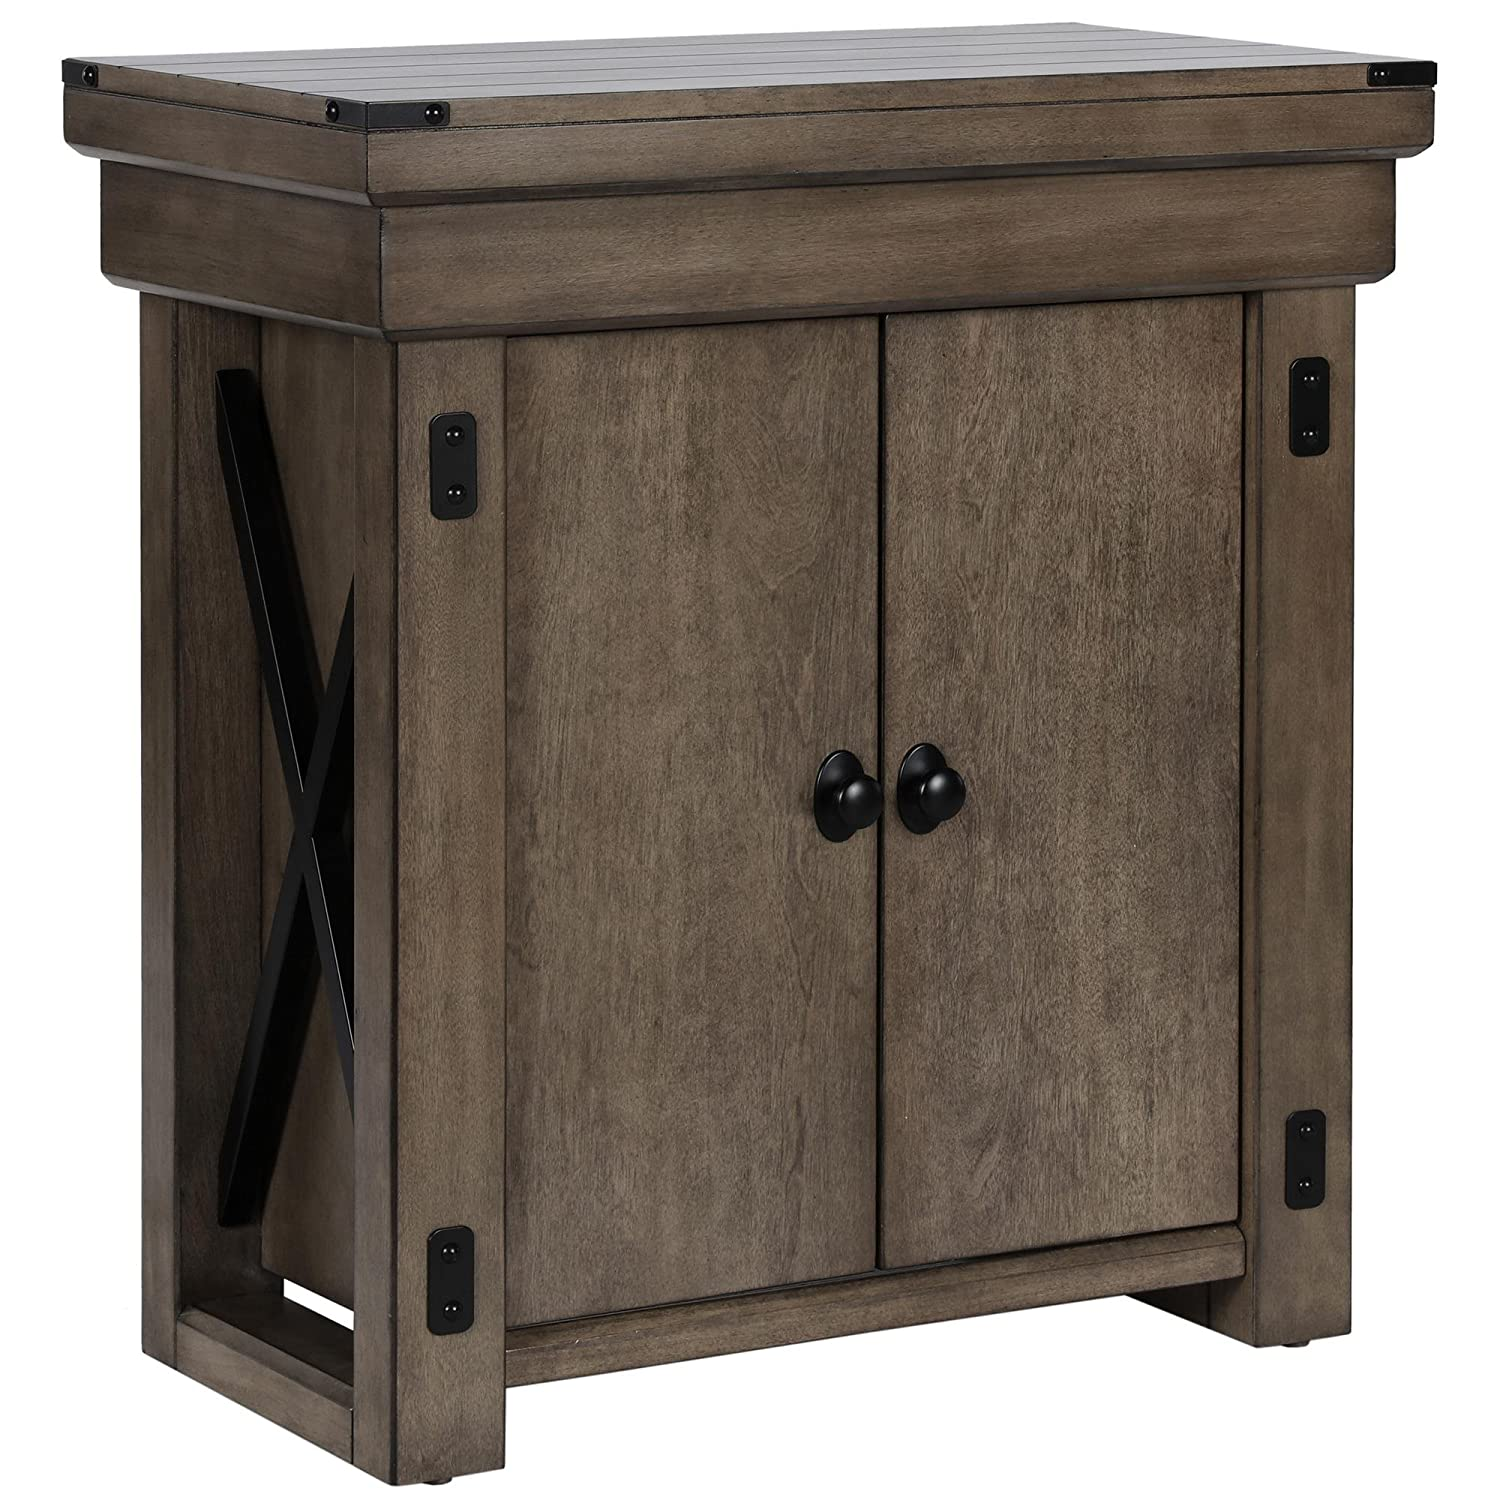 Ameriwood Home Wildwood Aquarium Stand 20 gallon Rustic Gray  sc 1 st  Amazon.com & Aquarium Stands | Amazon.com